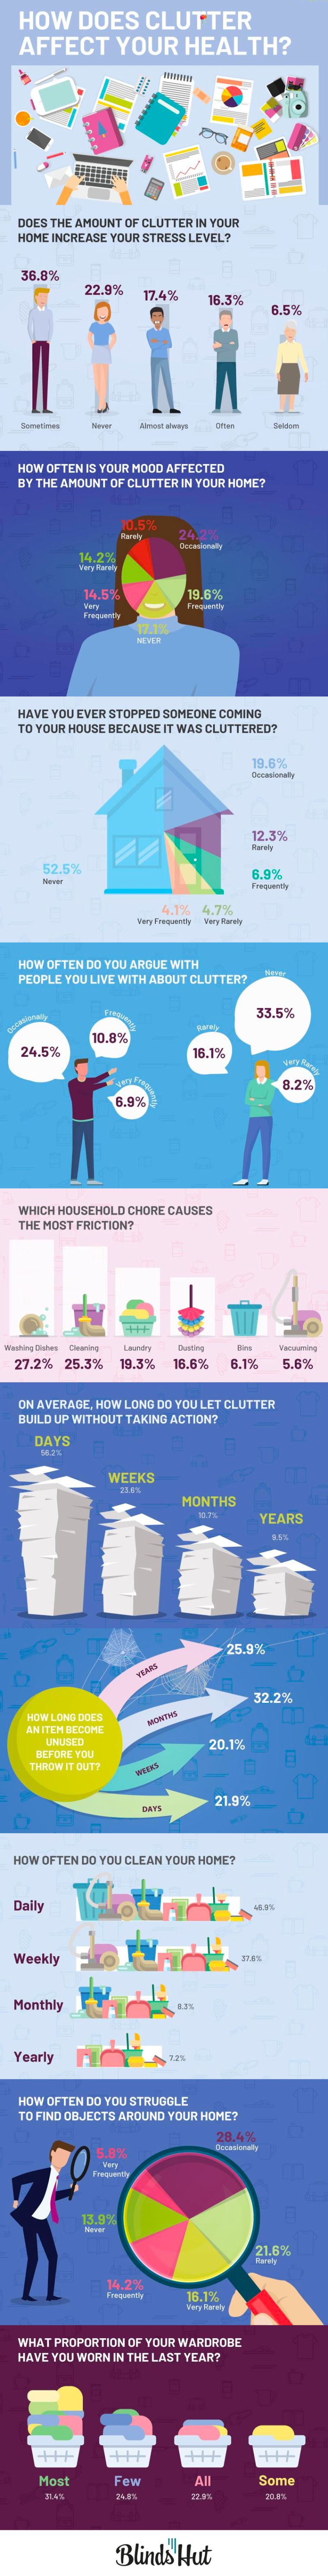 How does Clutter affect your Health? [Infographic] | ecogreenlove